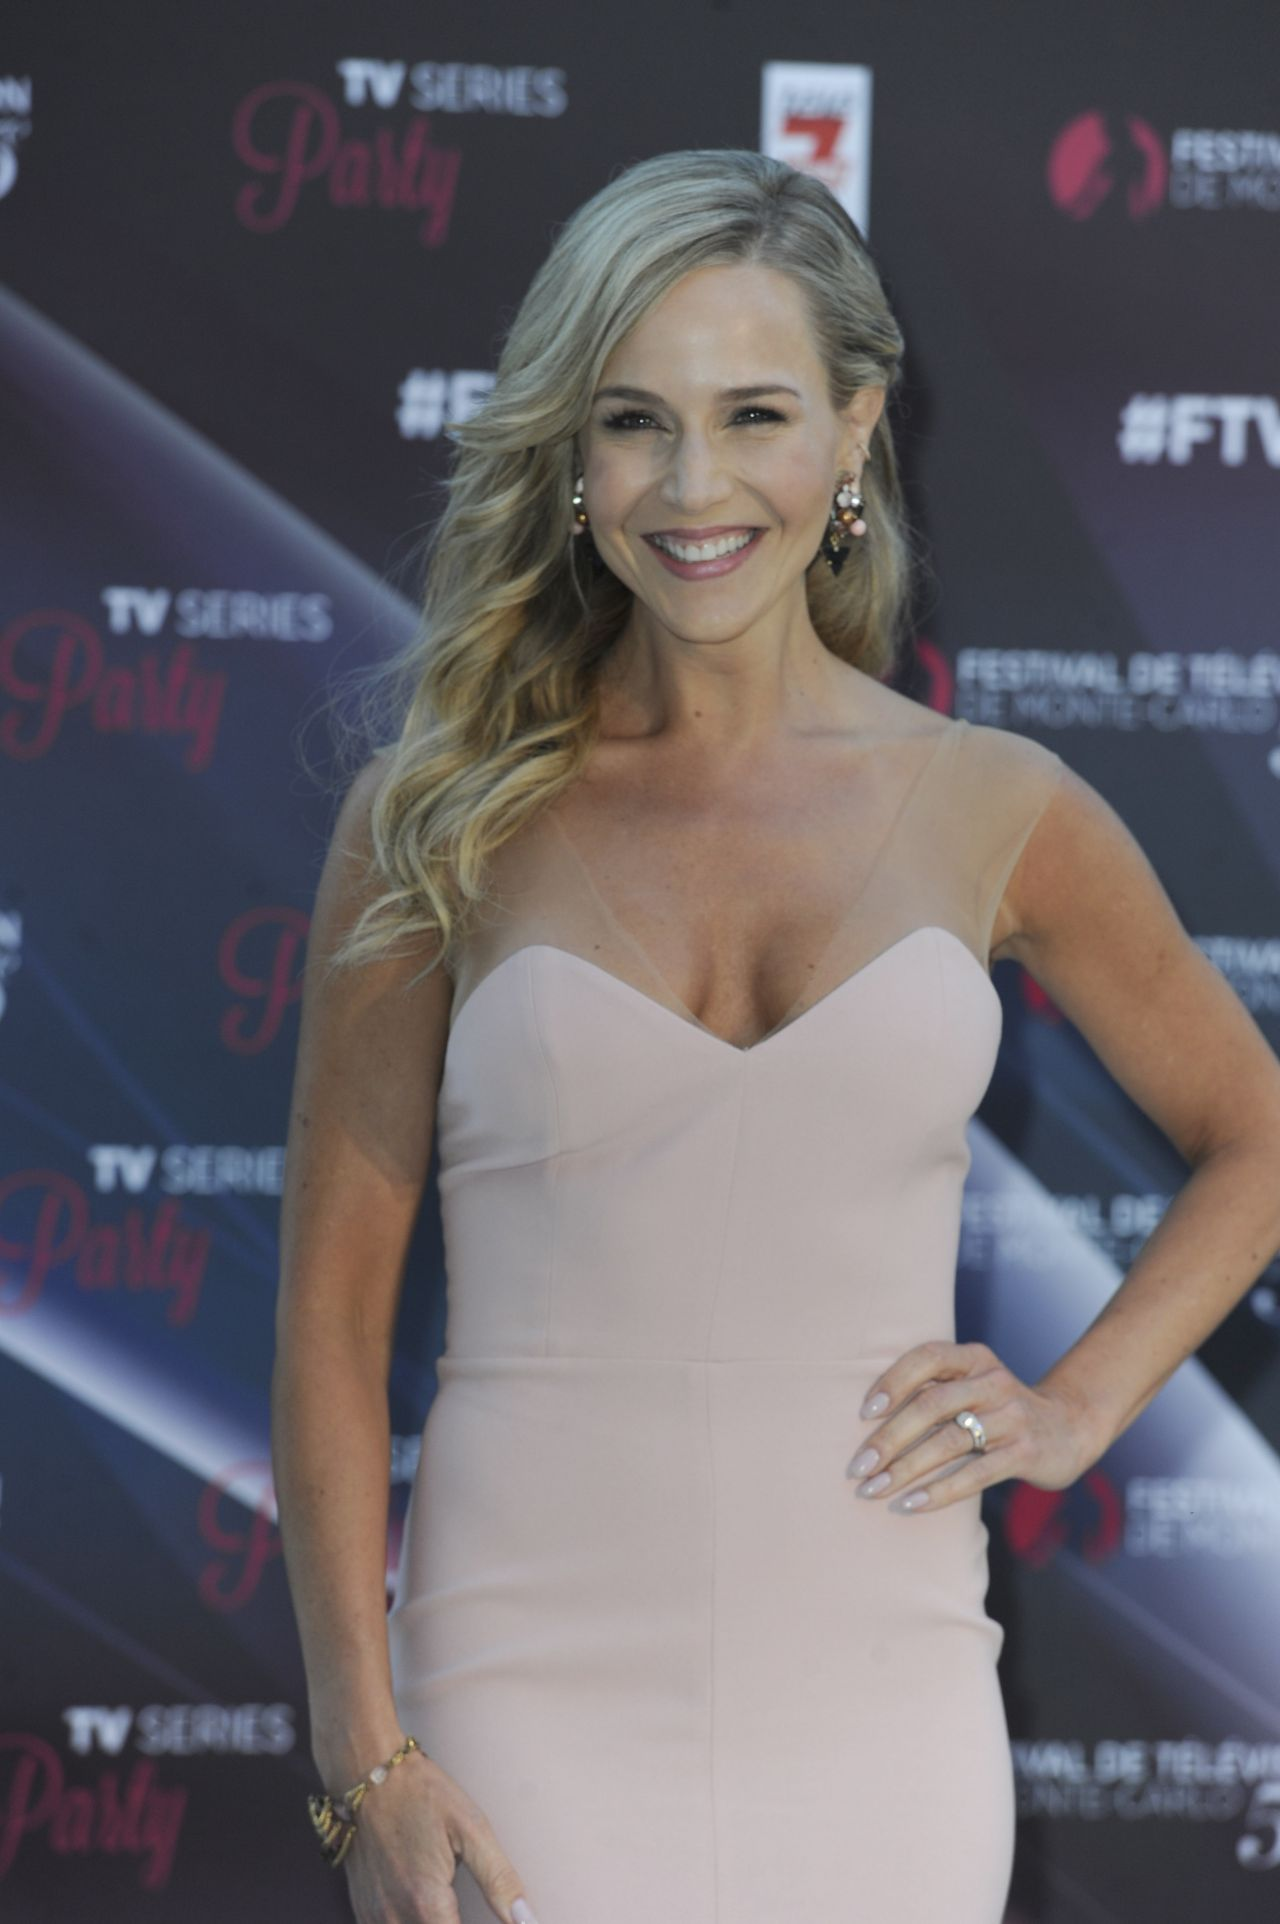 JULIE BENZ at TV Series Party at 56th Monte-Carlo